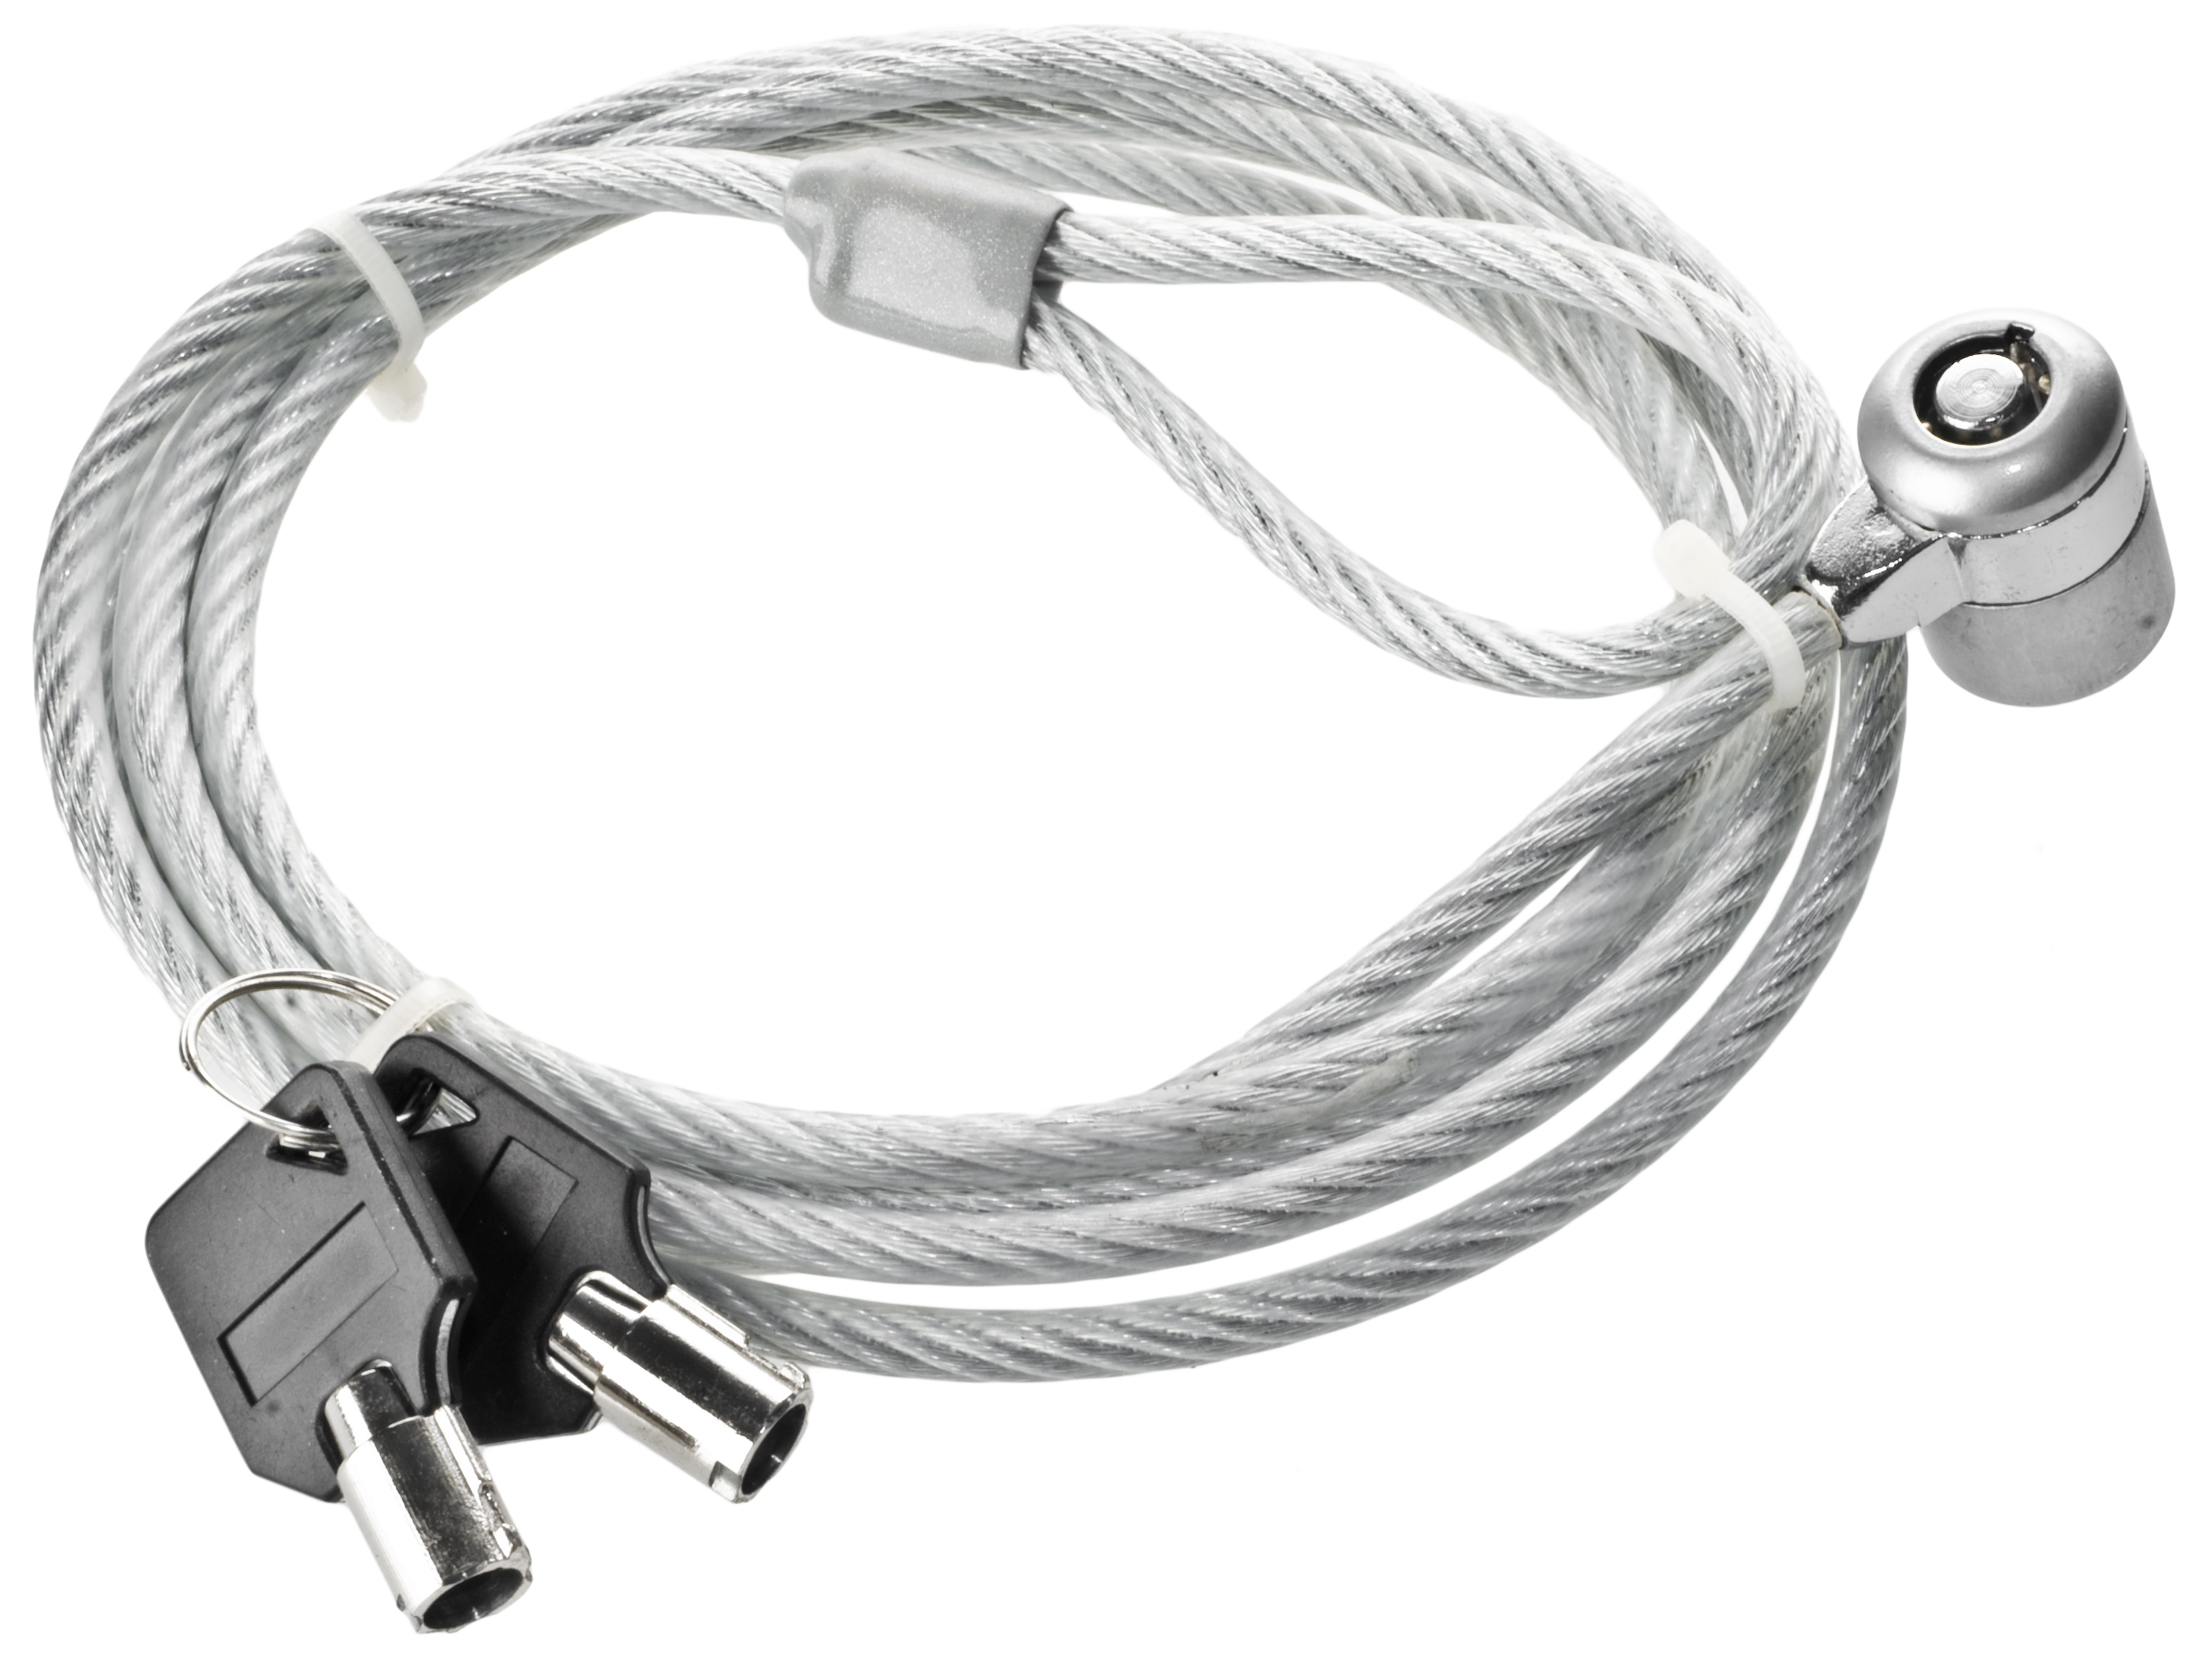 Anti-theft Cable for laptops etc. - Sound, Light, Rental, Event ...